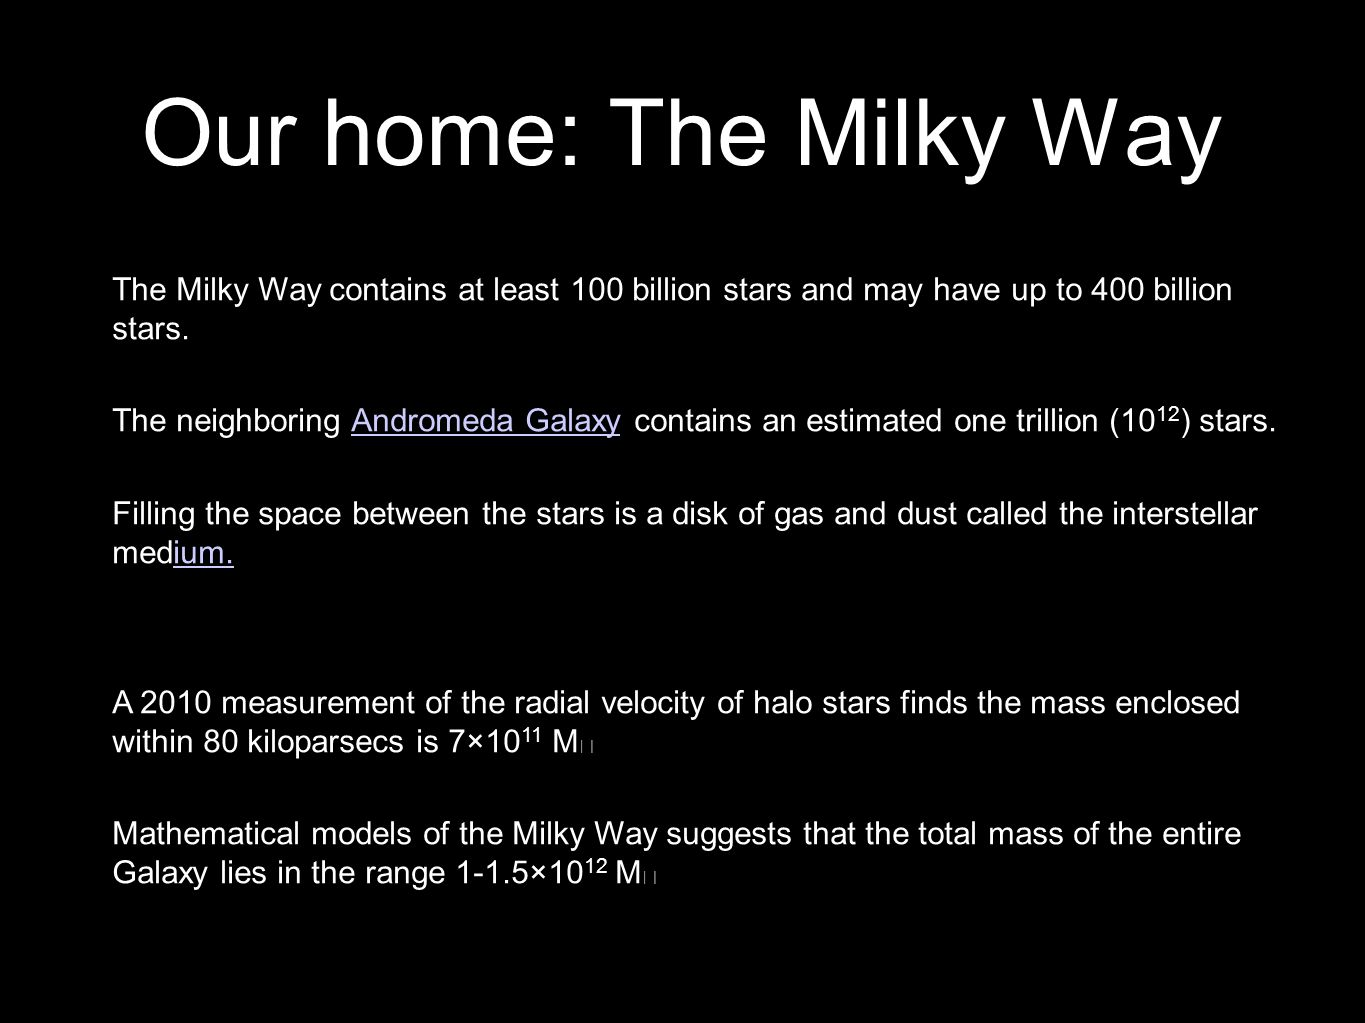 5 Our home: The Milky Way 2 The Milky Way contains at least 100 billion stars and may have up to 400 billion stars.